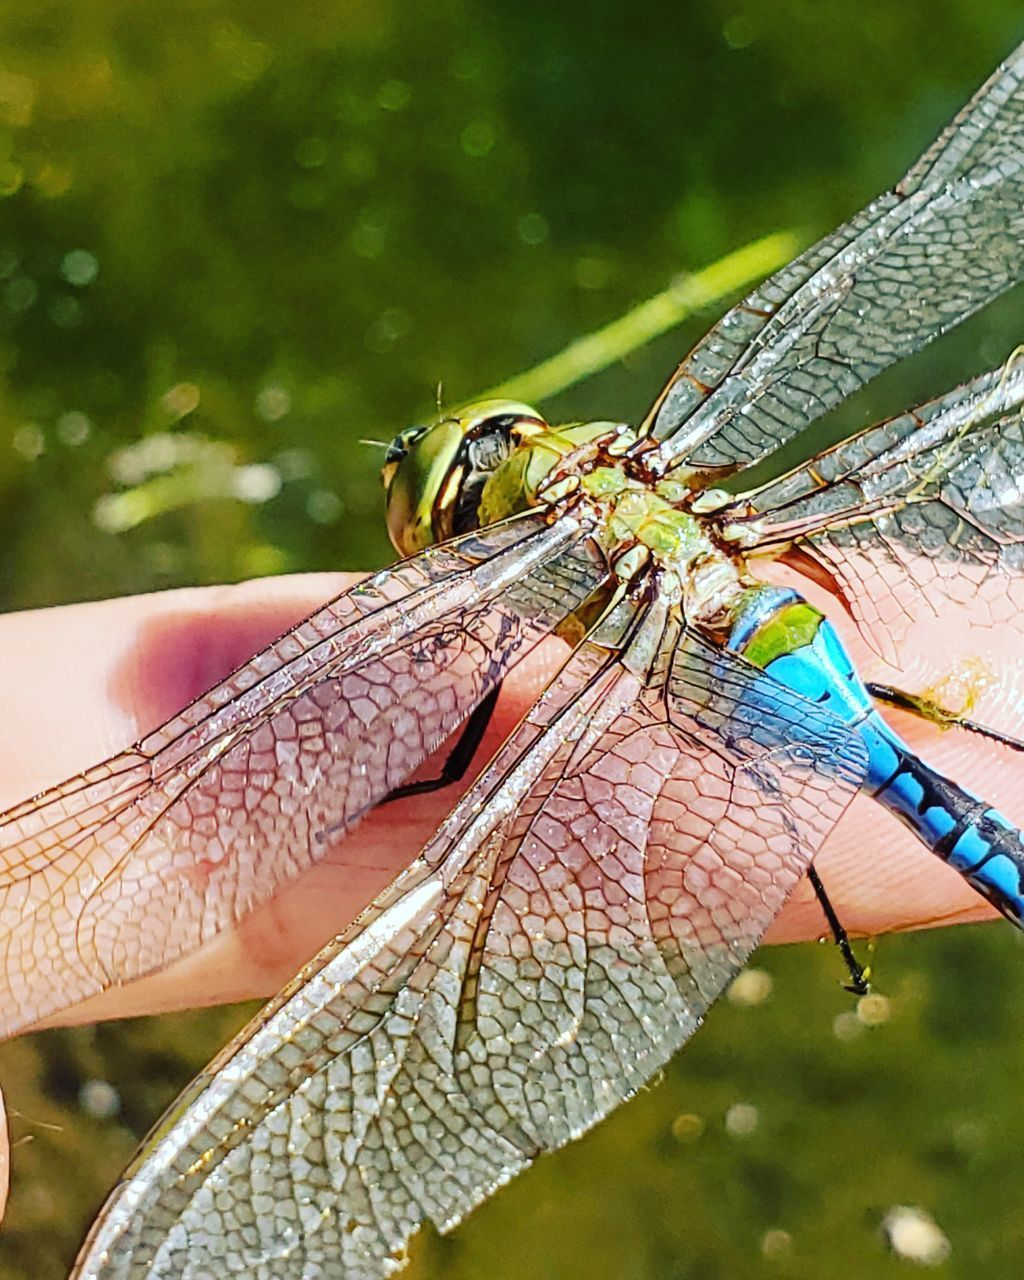 animal wildlife, animal, animal themes, one animal, animals in the wild, invertebrate, human body part, focus on foreground, insect, close-up, human hand, day, hand, nature, body part, dragonfly, outdoors, animal wing, human finger, finger, animal eye